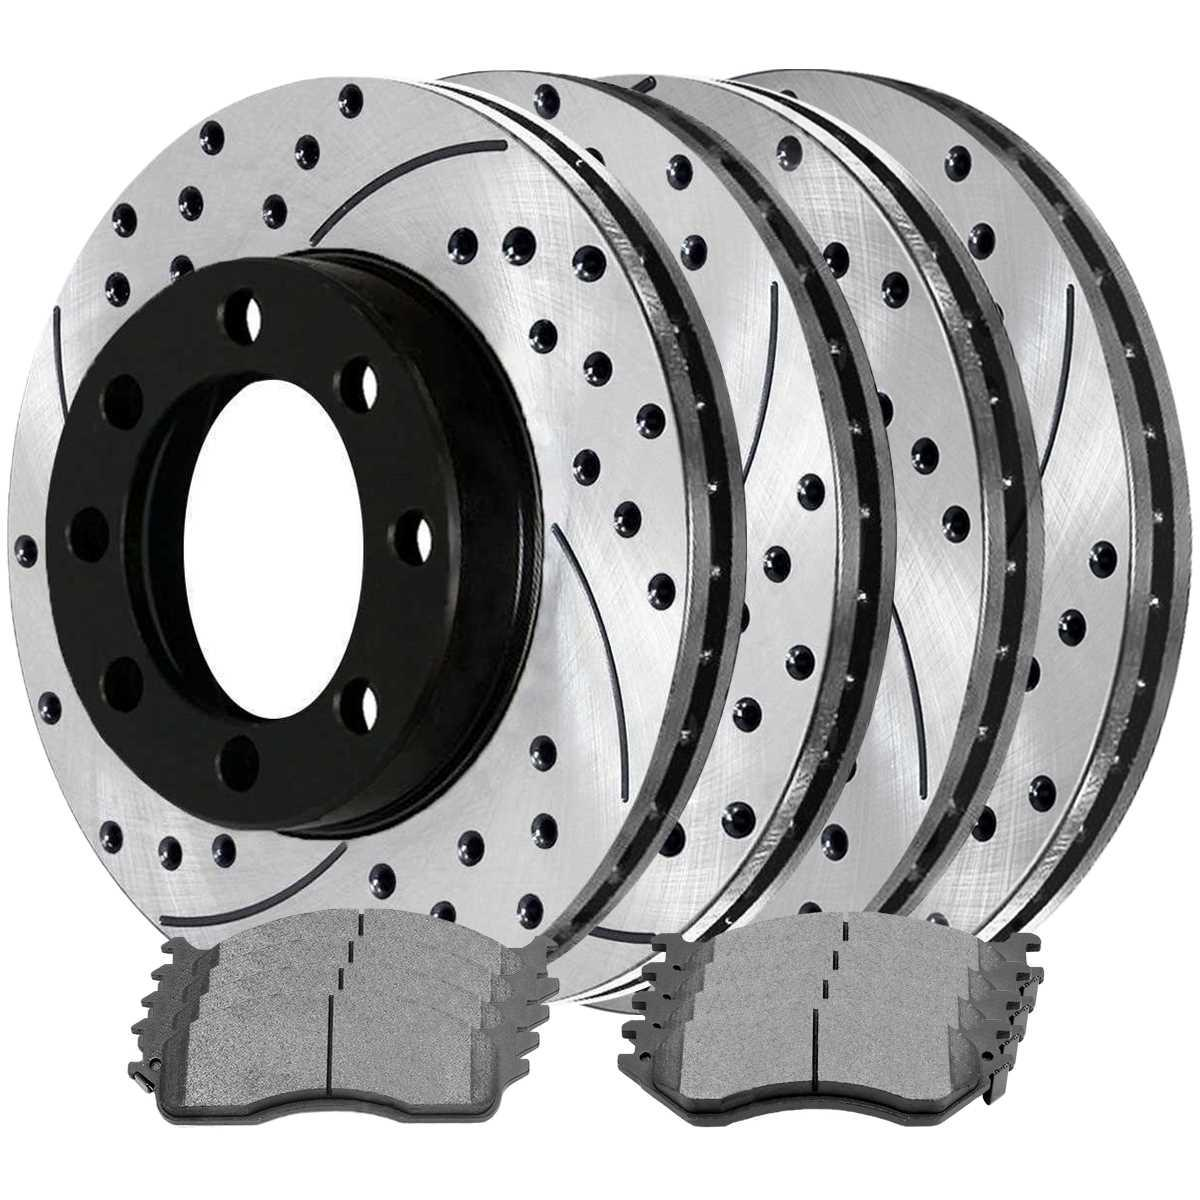 AutoShack SCD702PR63013 Front and Rear Drilled and Slotted Brake Rotors and Ceramic Pads